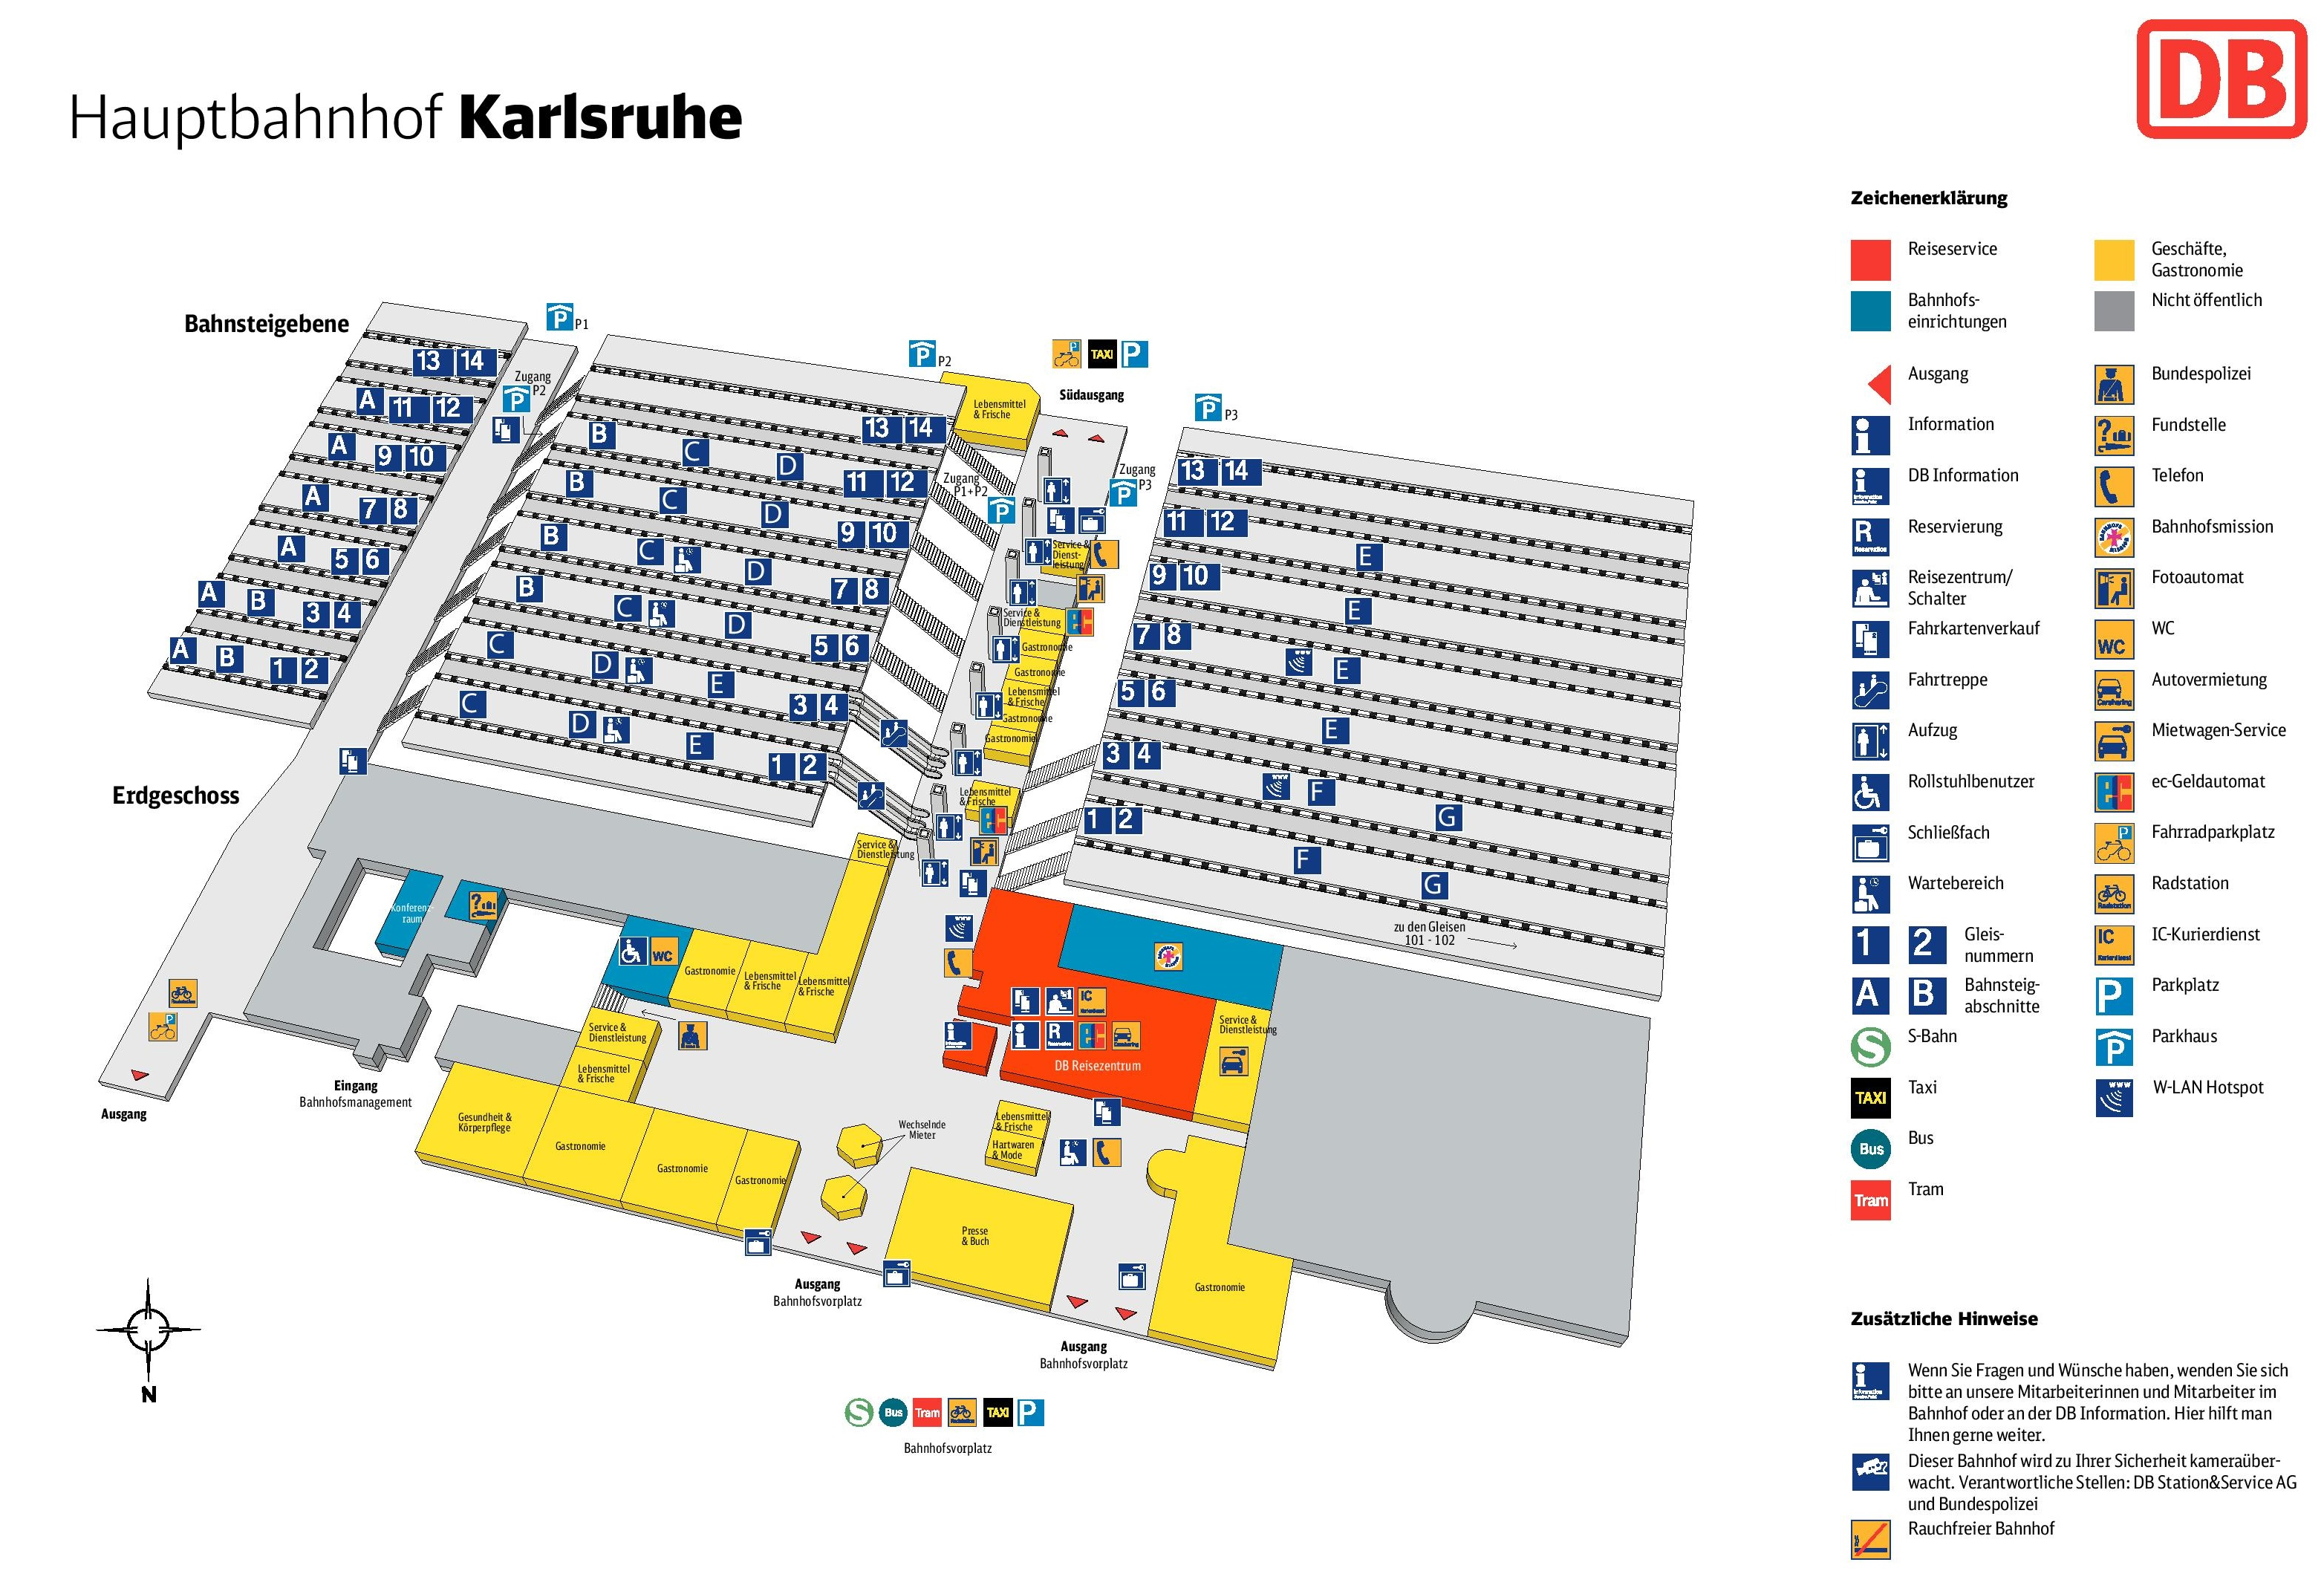 Karlsruhe hauptbahnhof map central train station